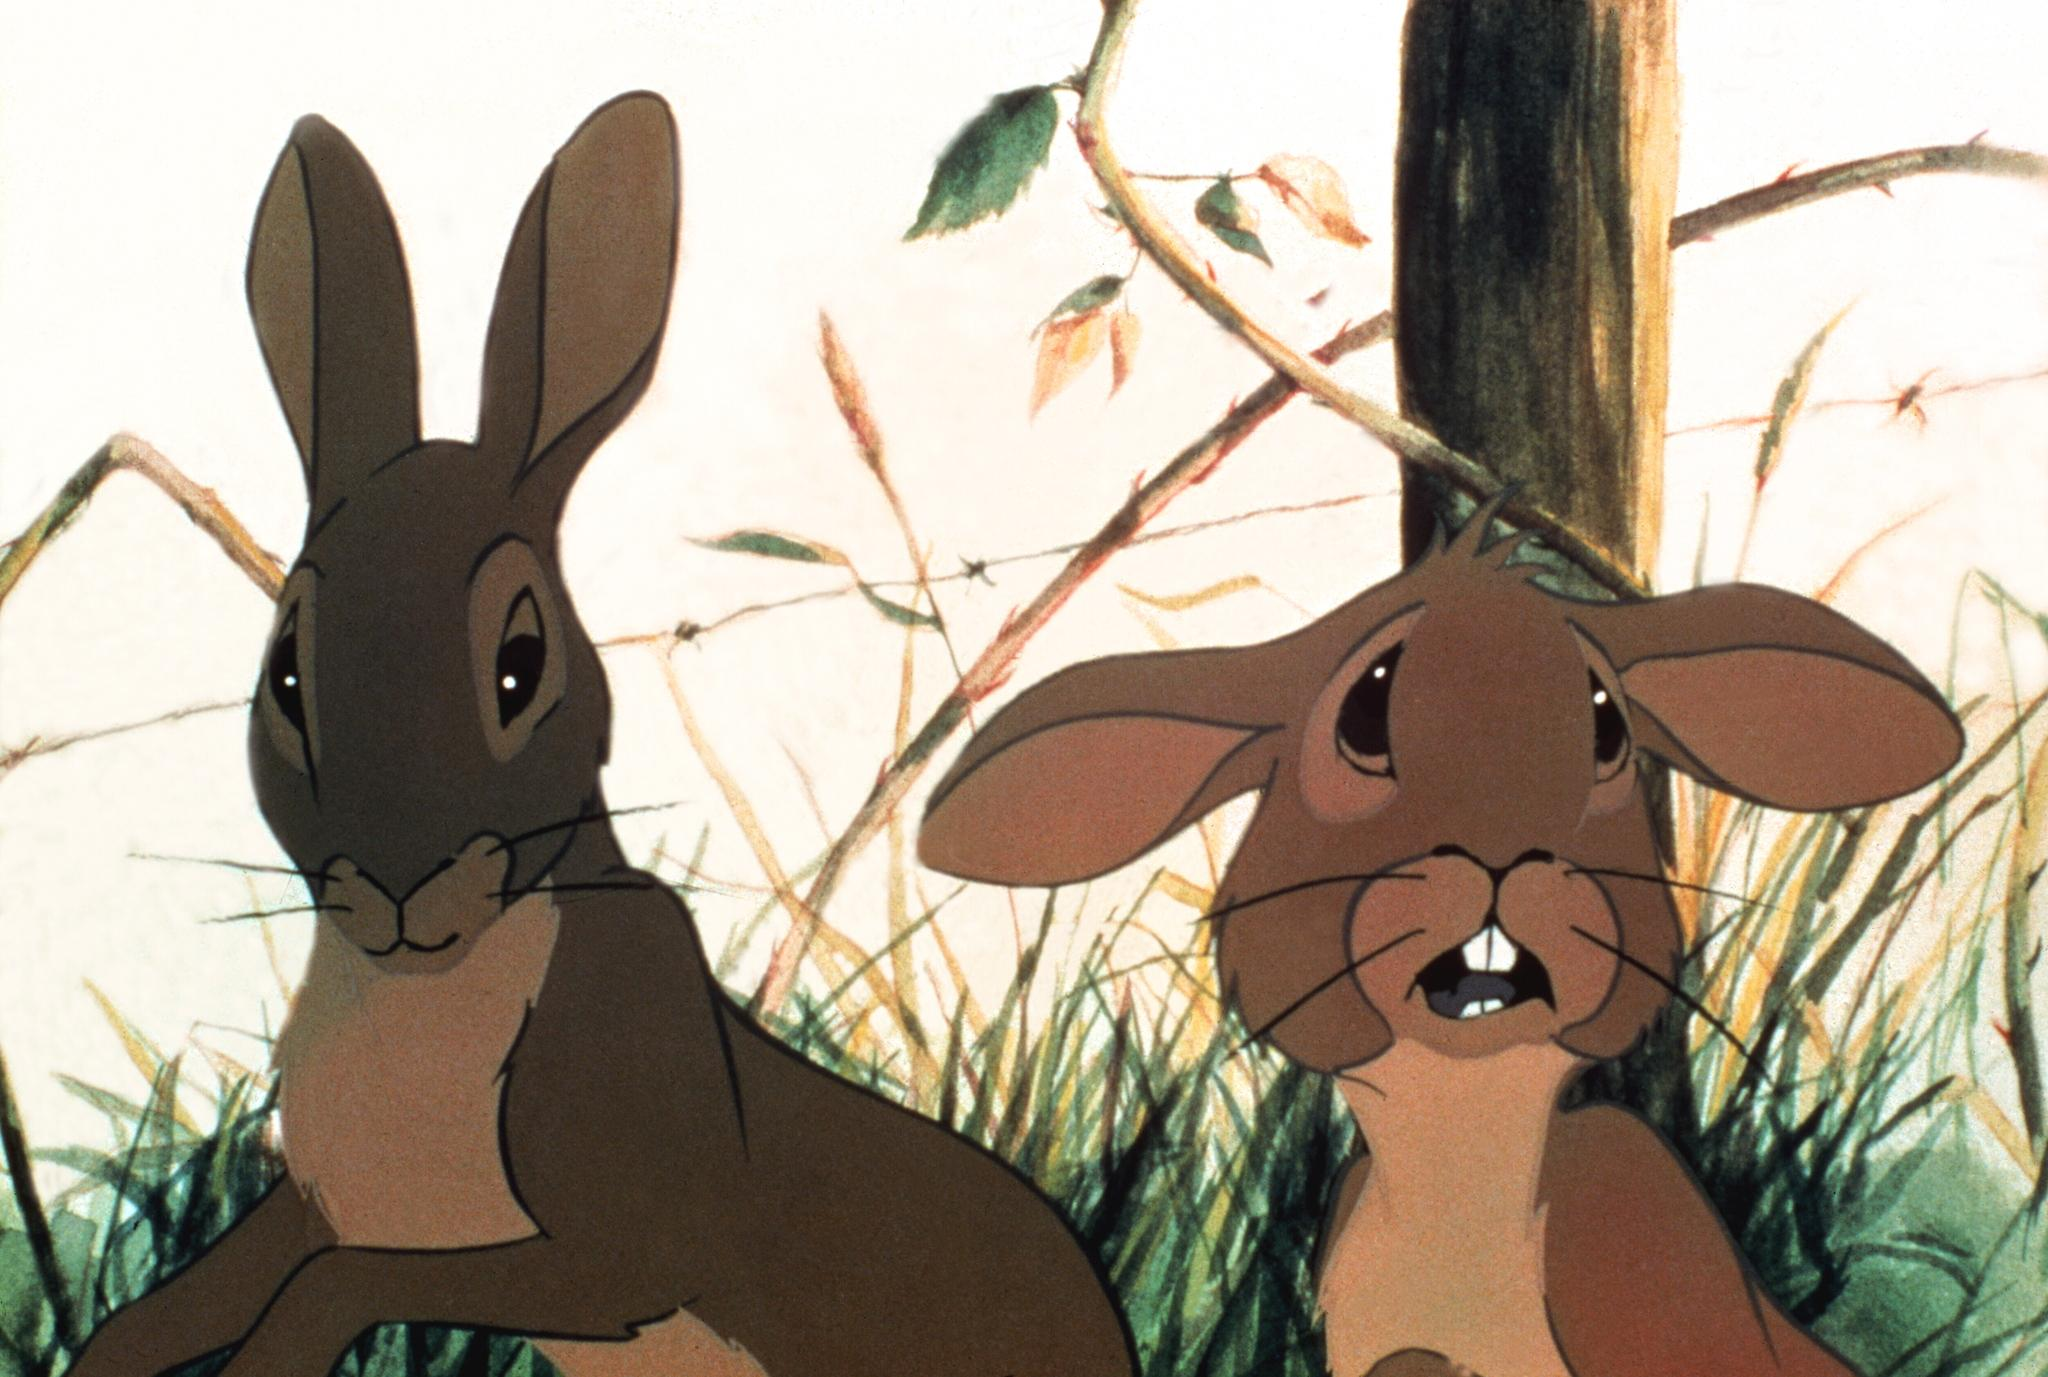 an analysis of mens decisions being not easy ones in hazel of watership down The reason the structure is as it is in watership down is because obviously it isn't about rabbits at all really i think it's about resistance and survival in a warlike situation - a classic epic - and the character of hazel is based on adams' commanding officer when he served in ww2.